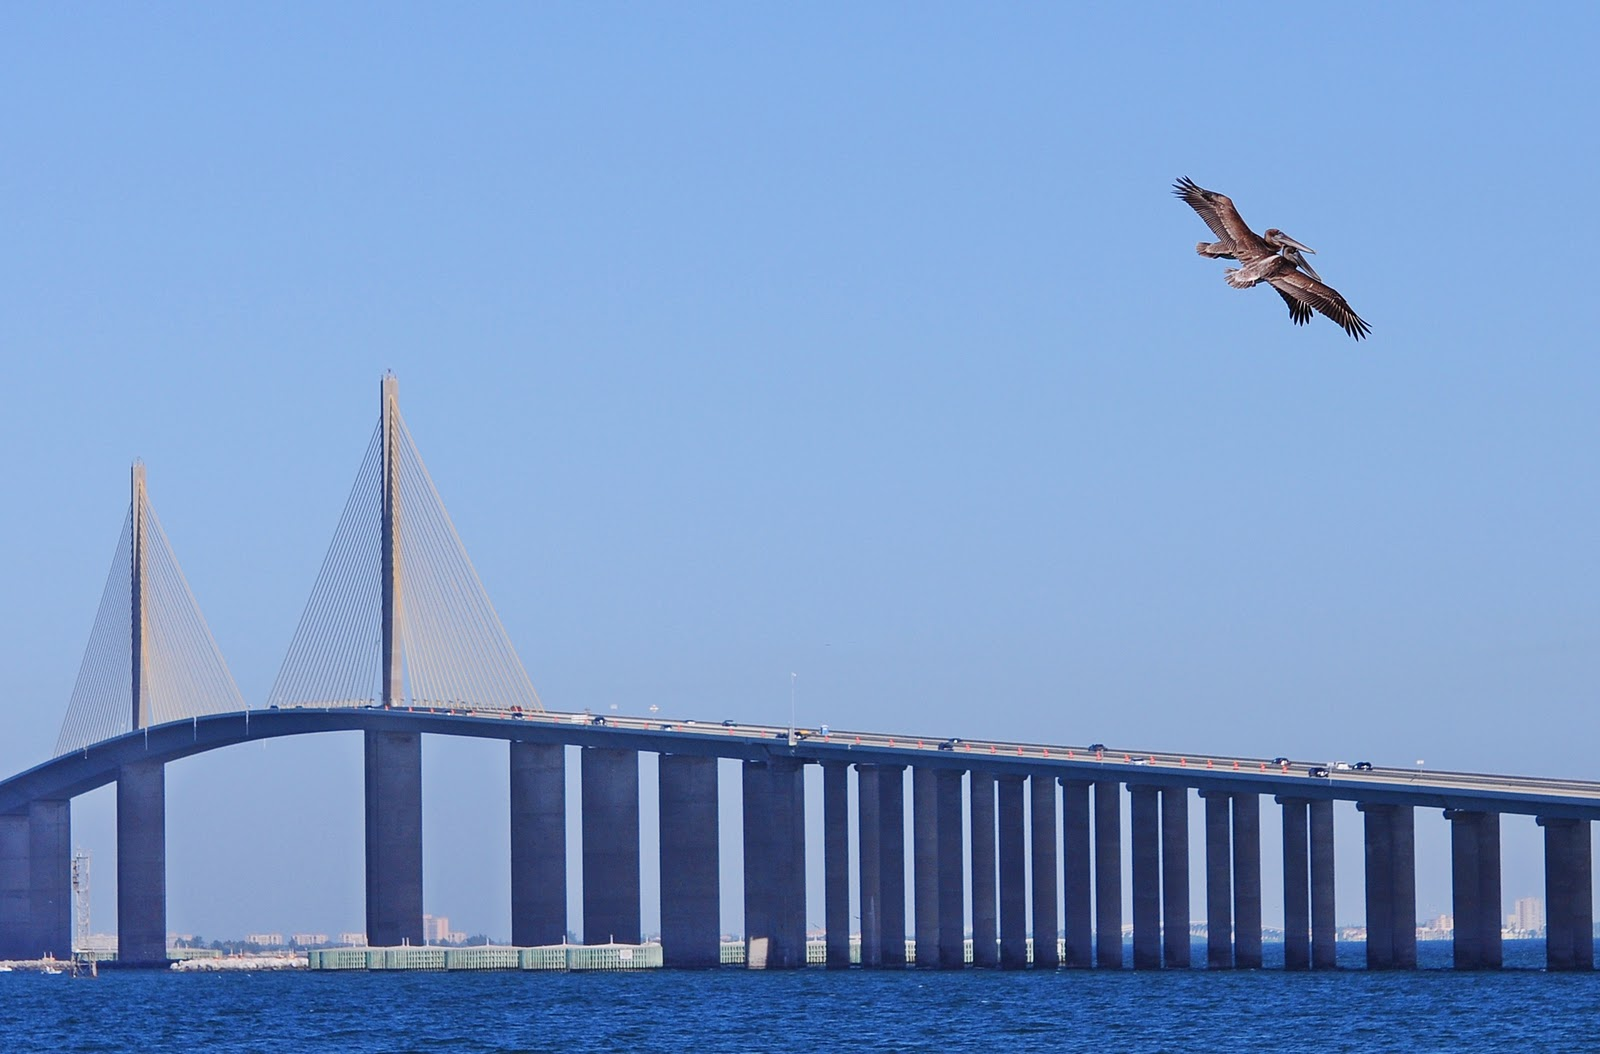 Dina 39 s city wildlife adventures sunshine skyway fishing for Tides 4 fishing skyway